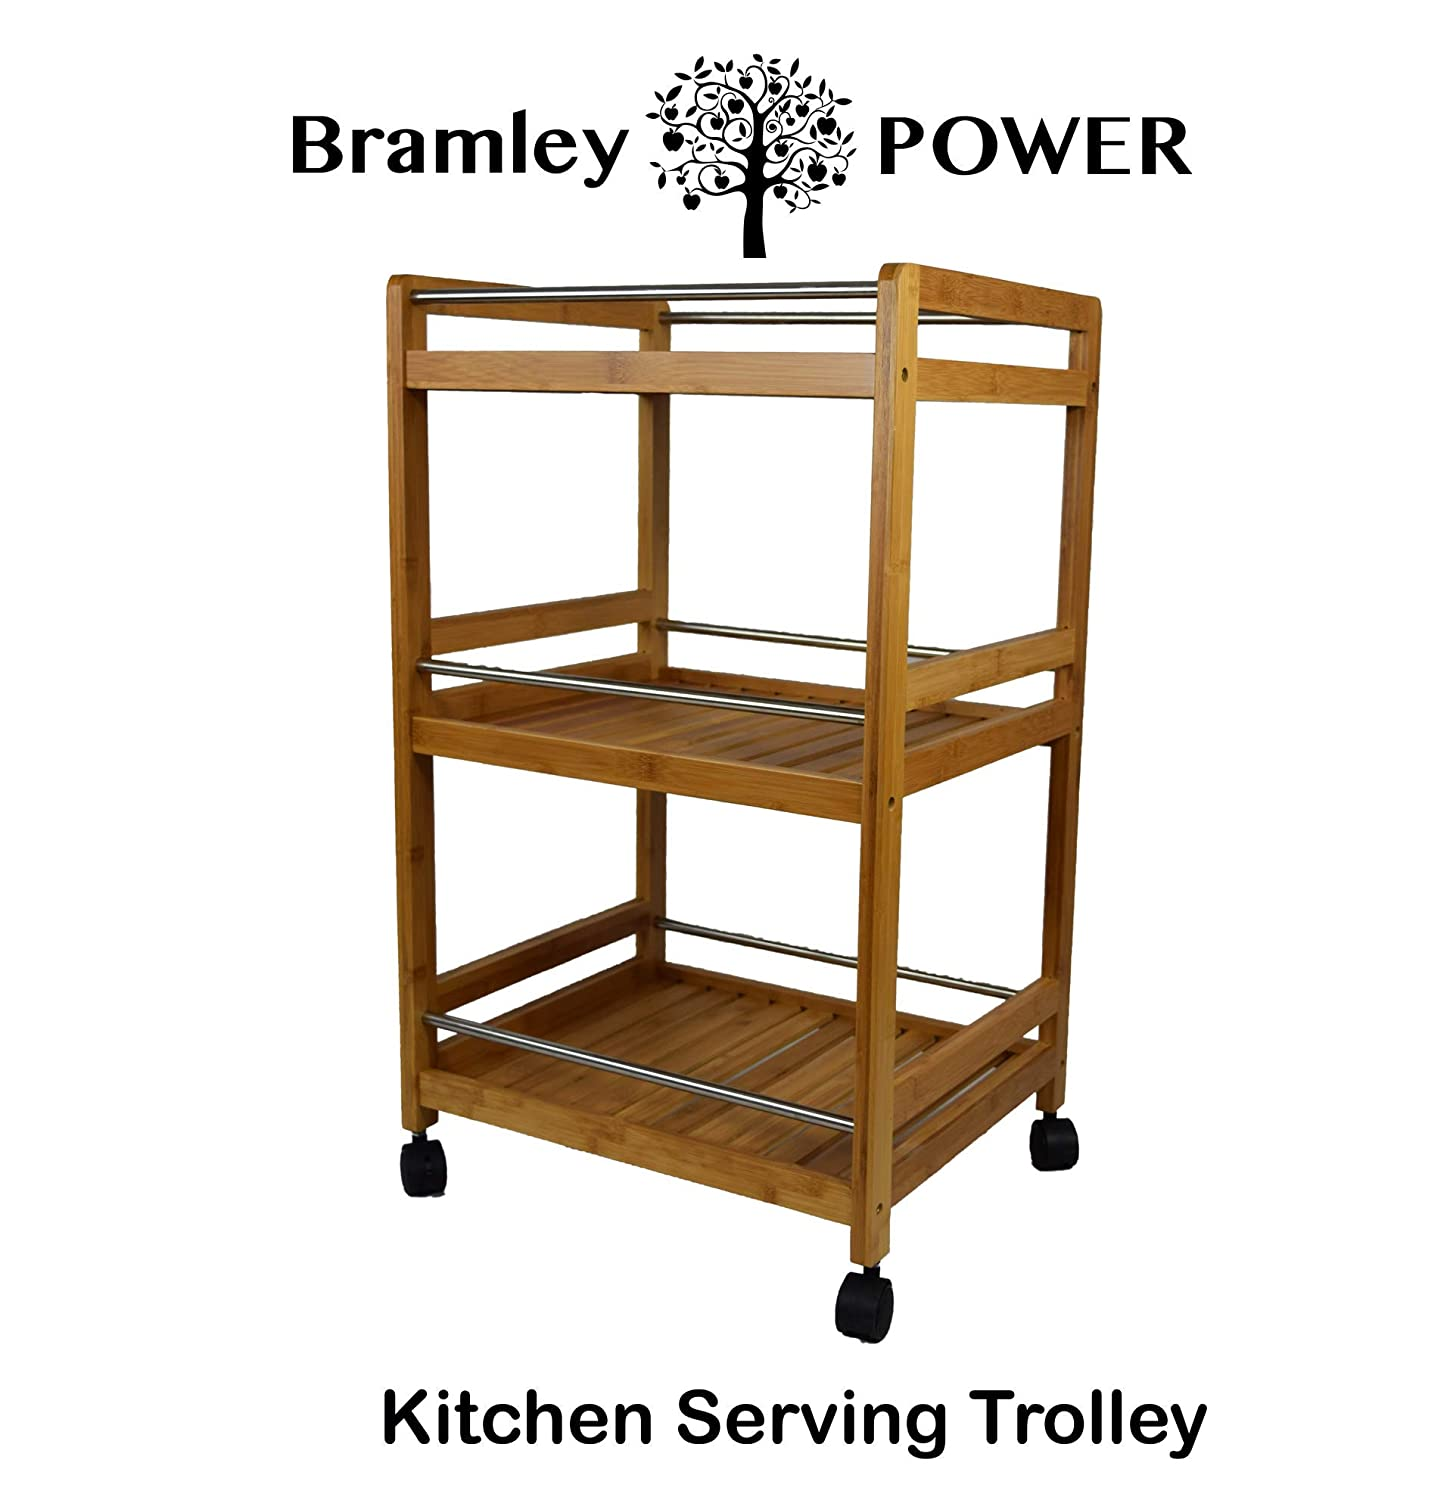 Bramley Power 3 Tier Bamboo Wood Wheeled Kitchen Serving Trolley Rolling Cart with Casters Wheels (Medium)